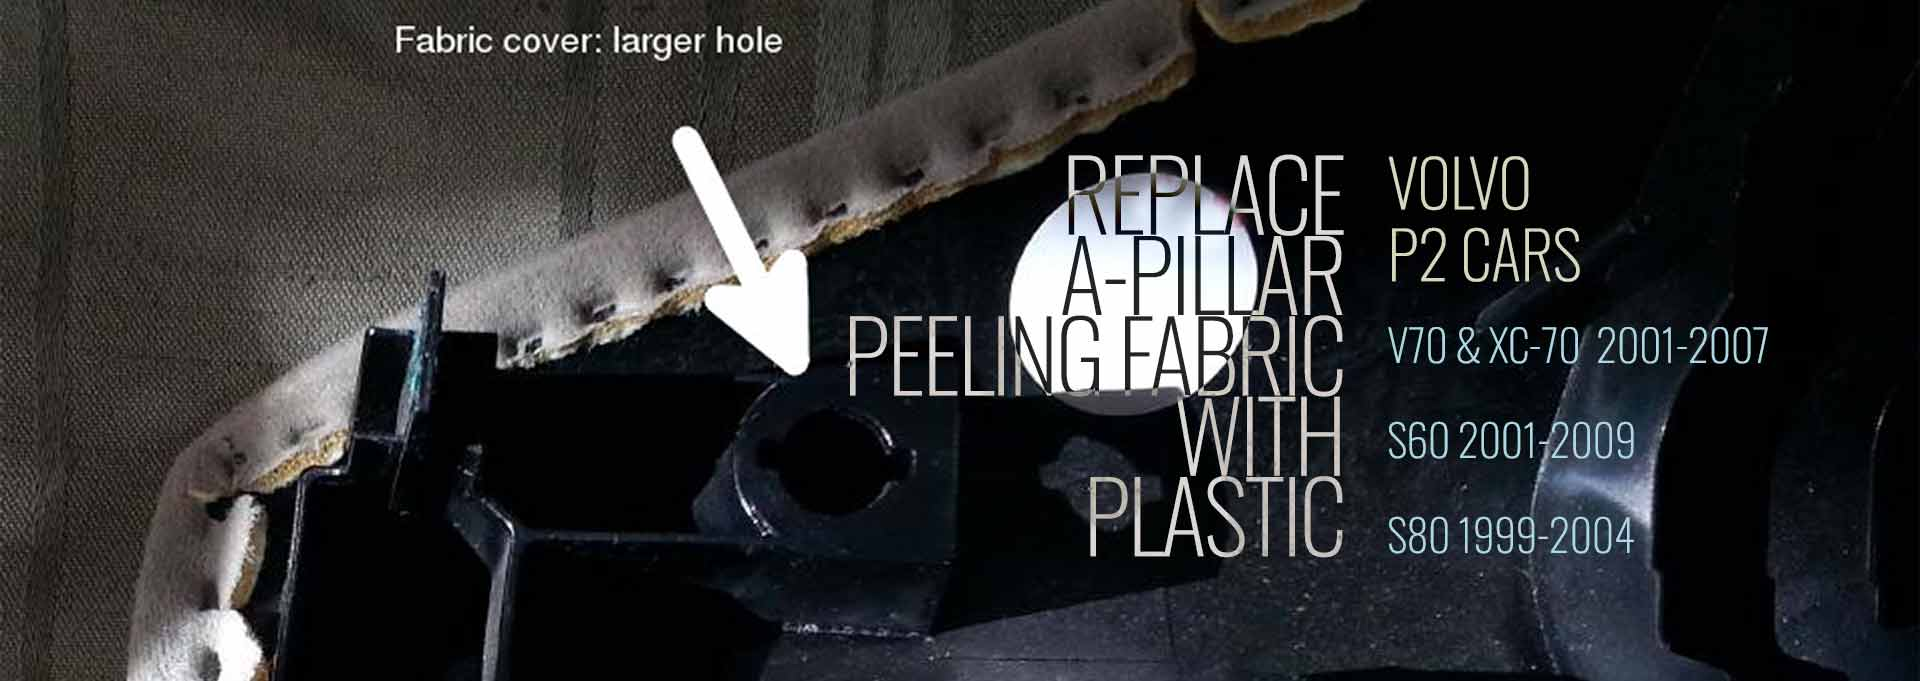 How to Fix A-Pillar Peeling Fabric